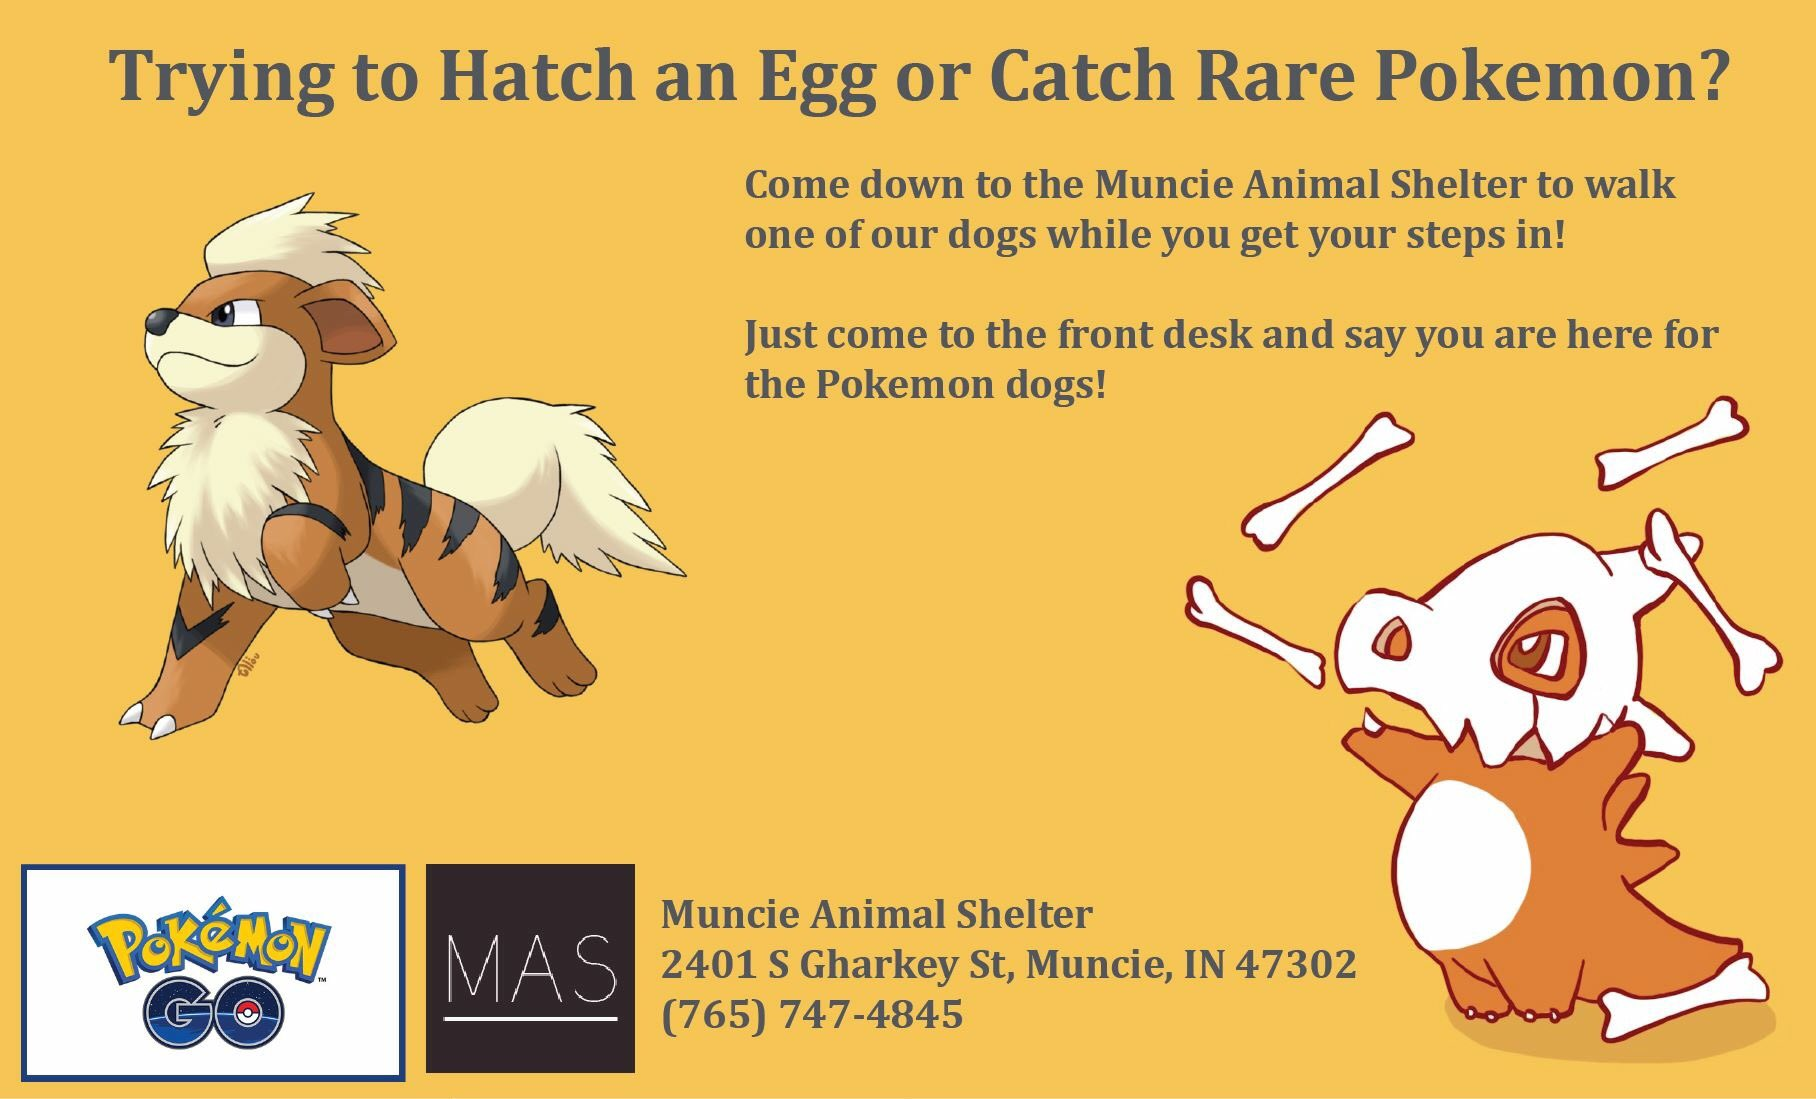 Muncie Animal Shelter Pokemon Go marketing